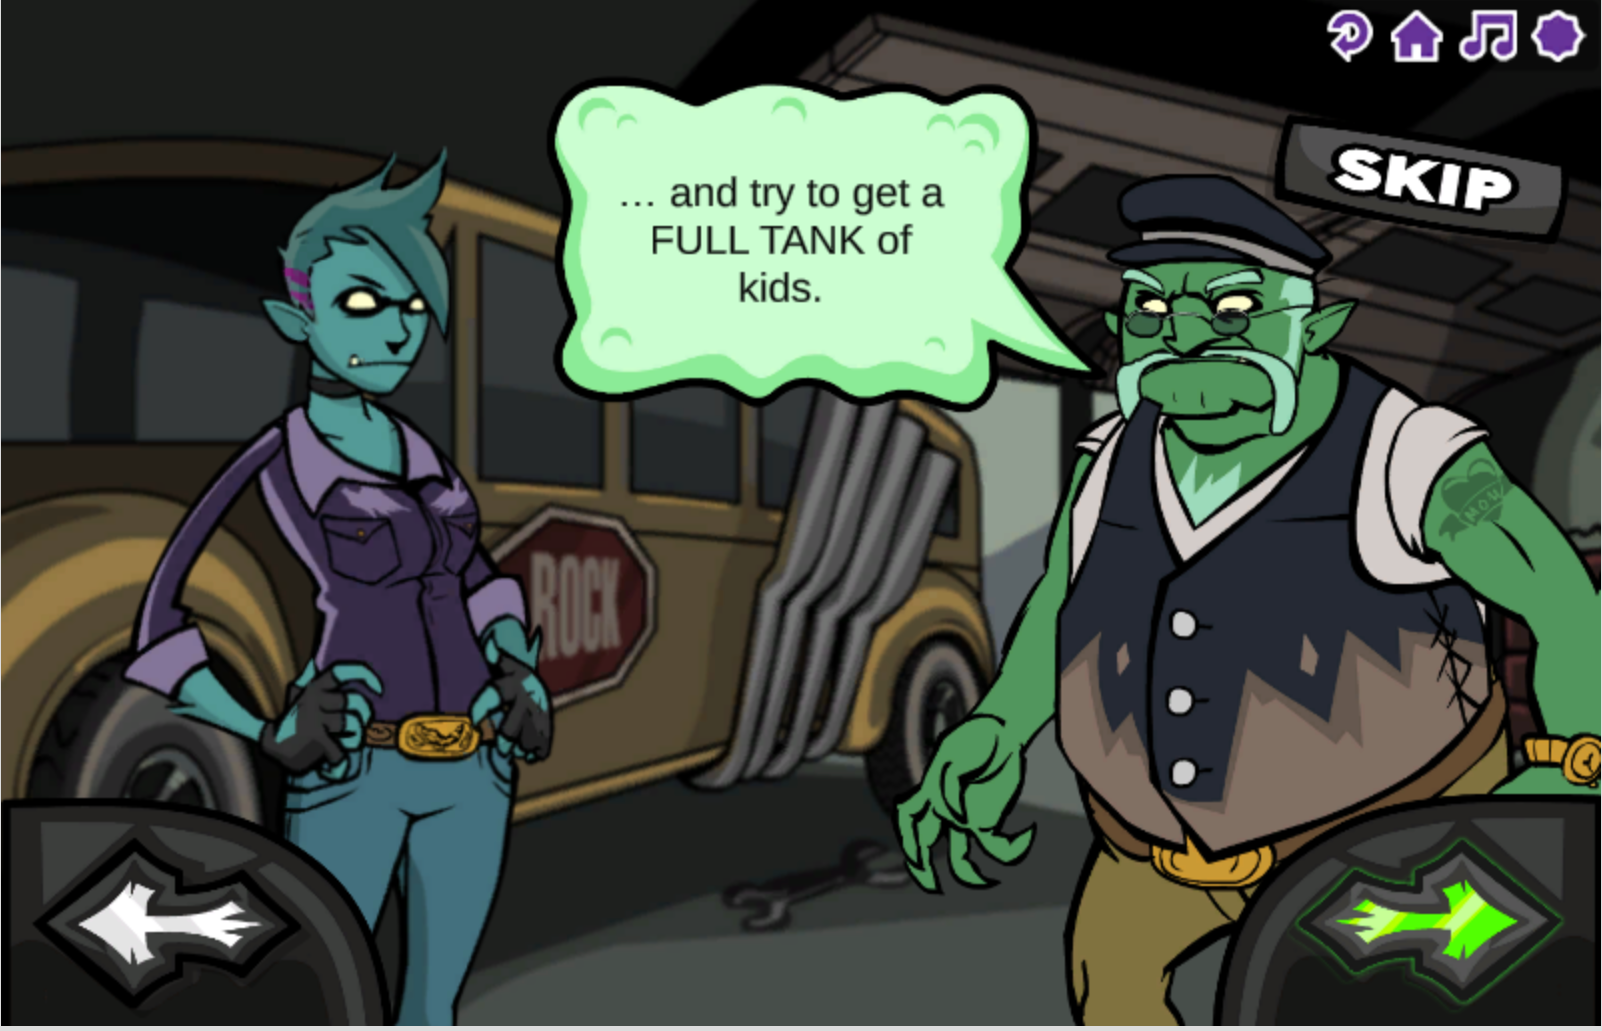 Monster School Bus introduction screenshot of two characters and the goal of the game.